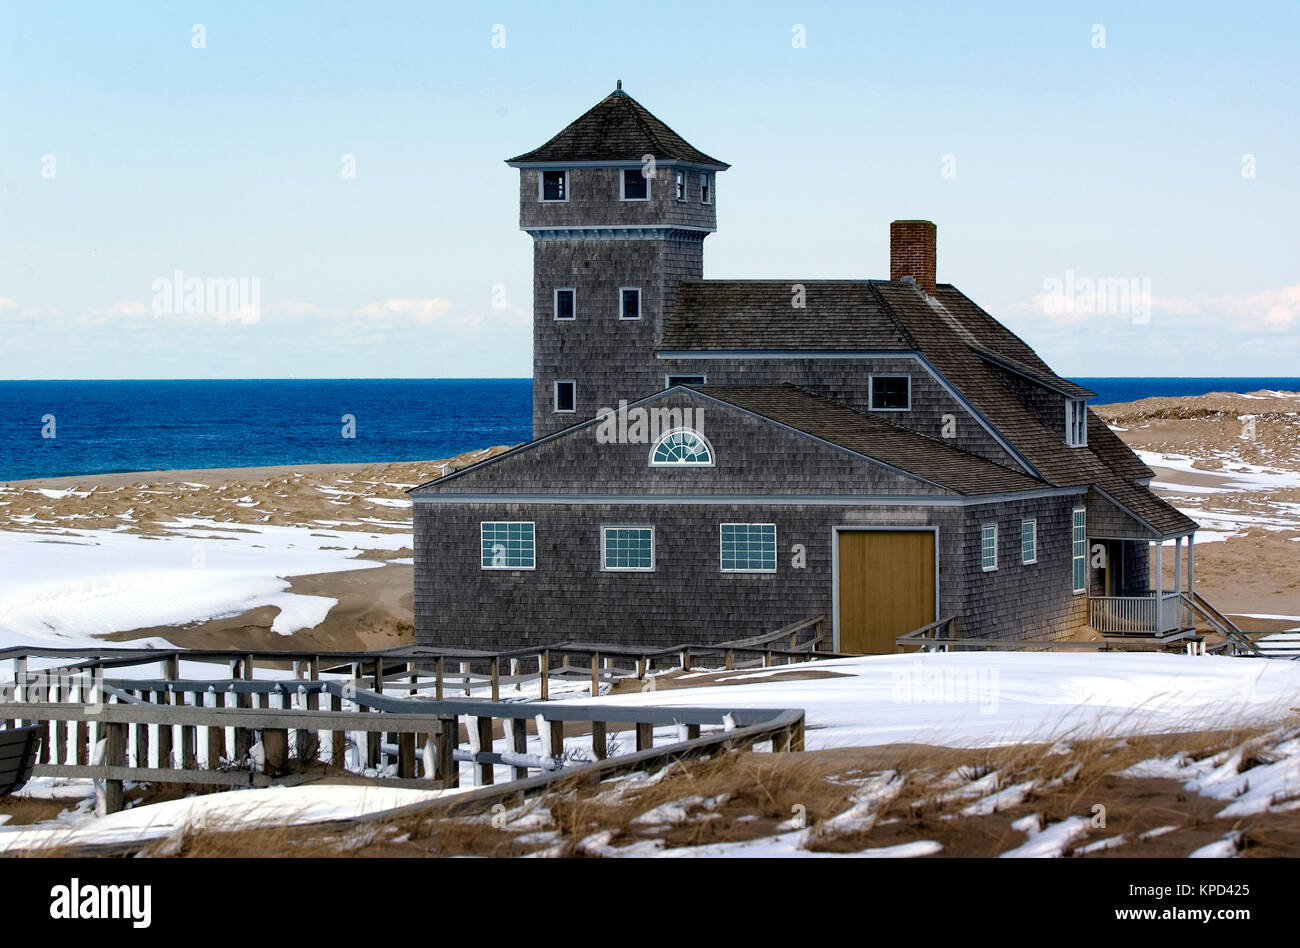 The historic life saving station at Race Point Beach in Provincetown, Massachusetts (Cape Cod National Seashore), - Stock Image